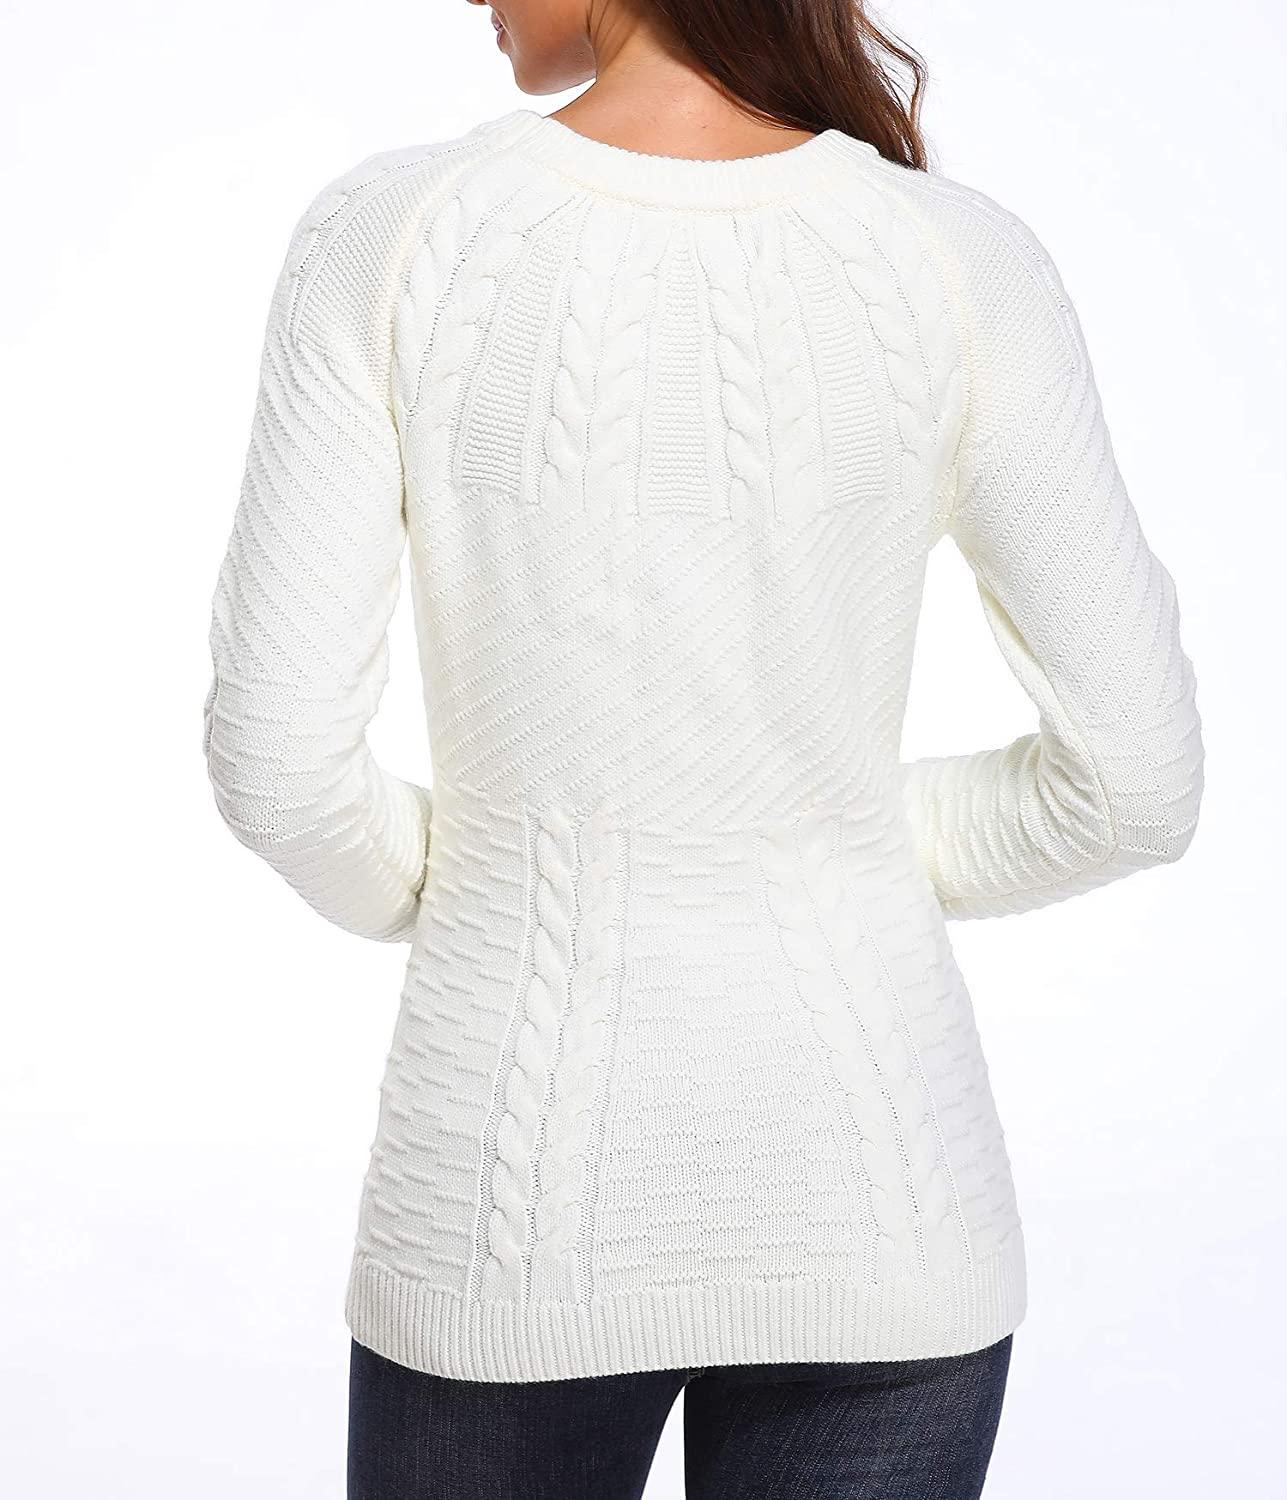 Wudodo Womens Round Neck Long Sleeve Sweater Soft Warm Cable Knitted Jumper Knitwear Top